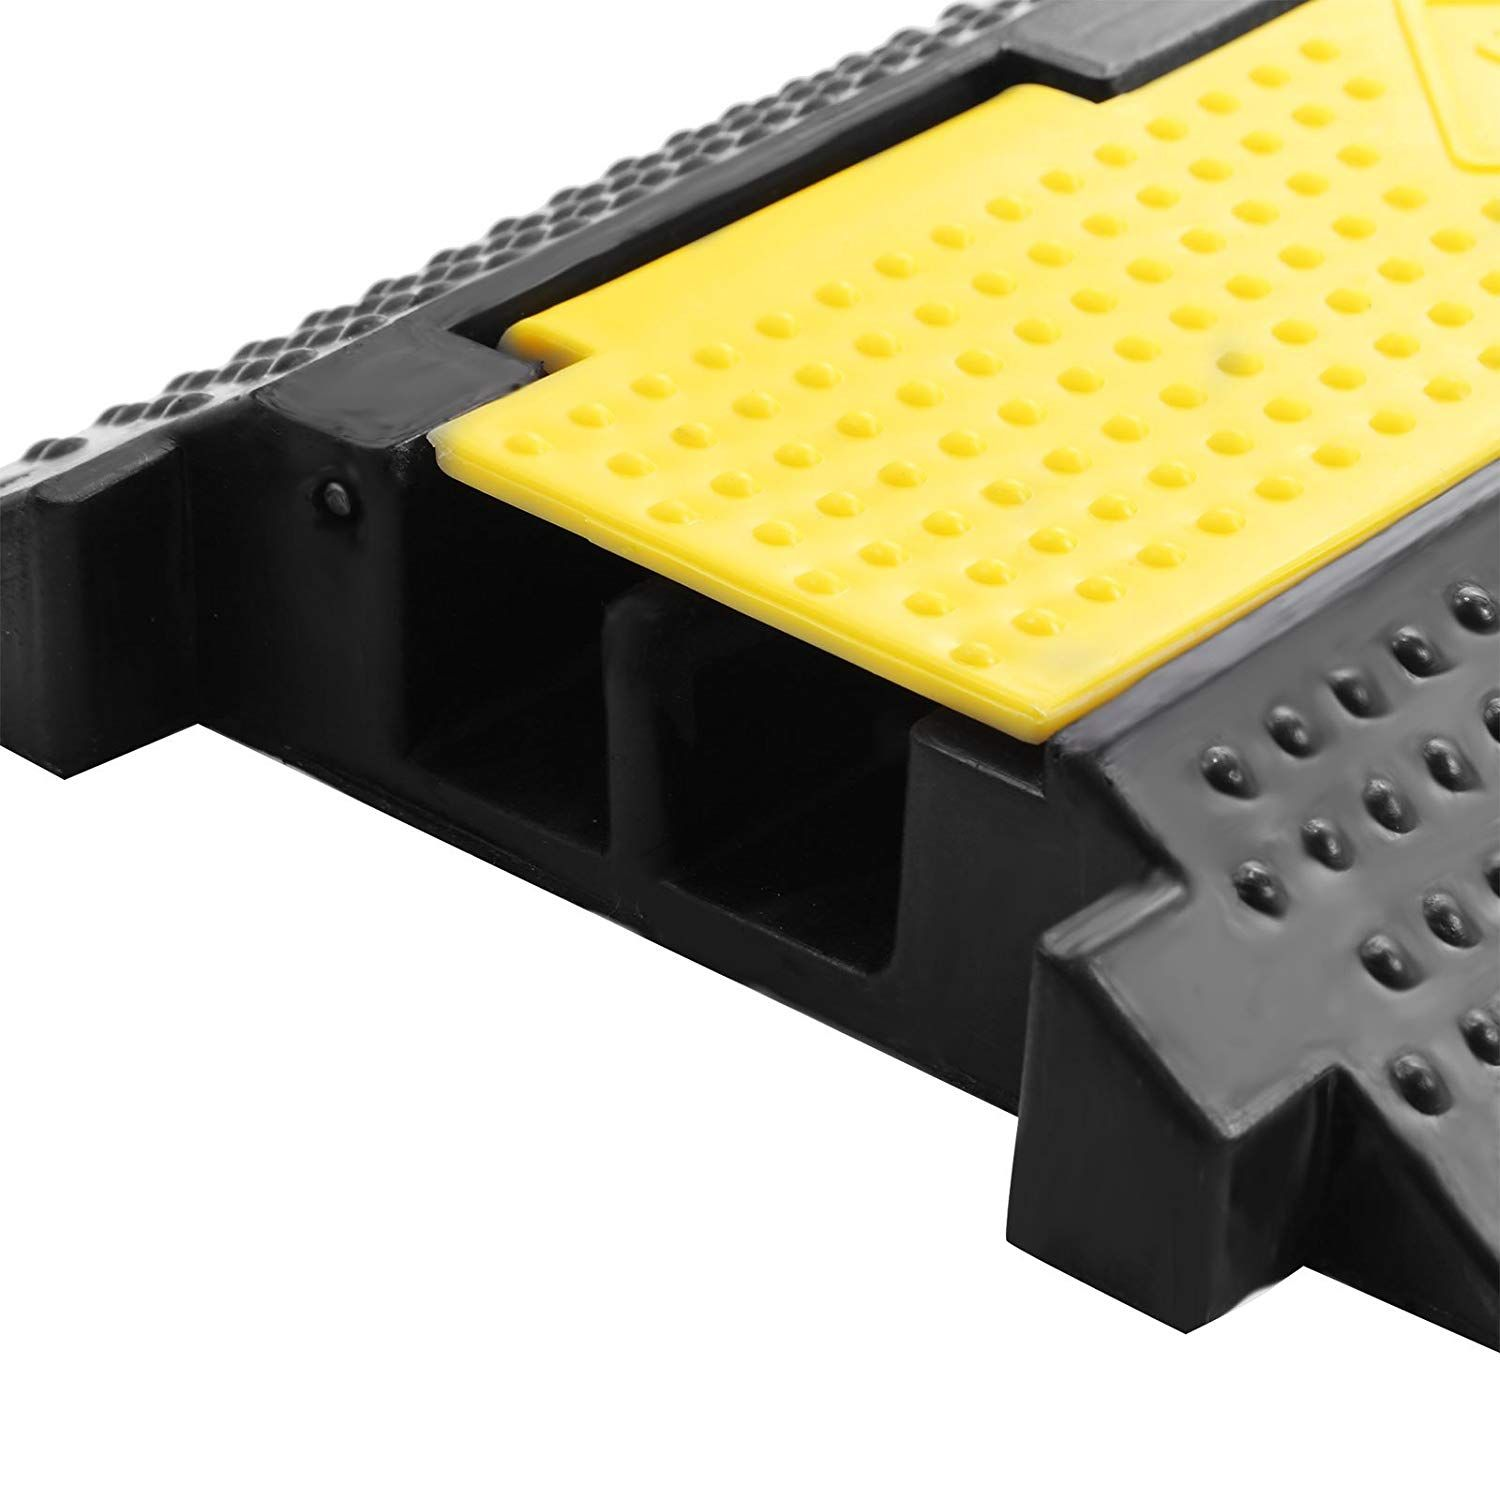 Amazon Com Bestequip 3 Pack Extreme Rubber Cable Protectors 2 Channel Cable Protector Ramp 11000lbs Capacity Rubbe Cable Protector Speed Bump Home Improvement